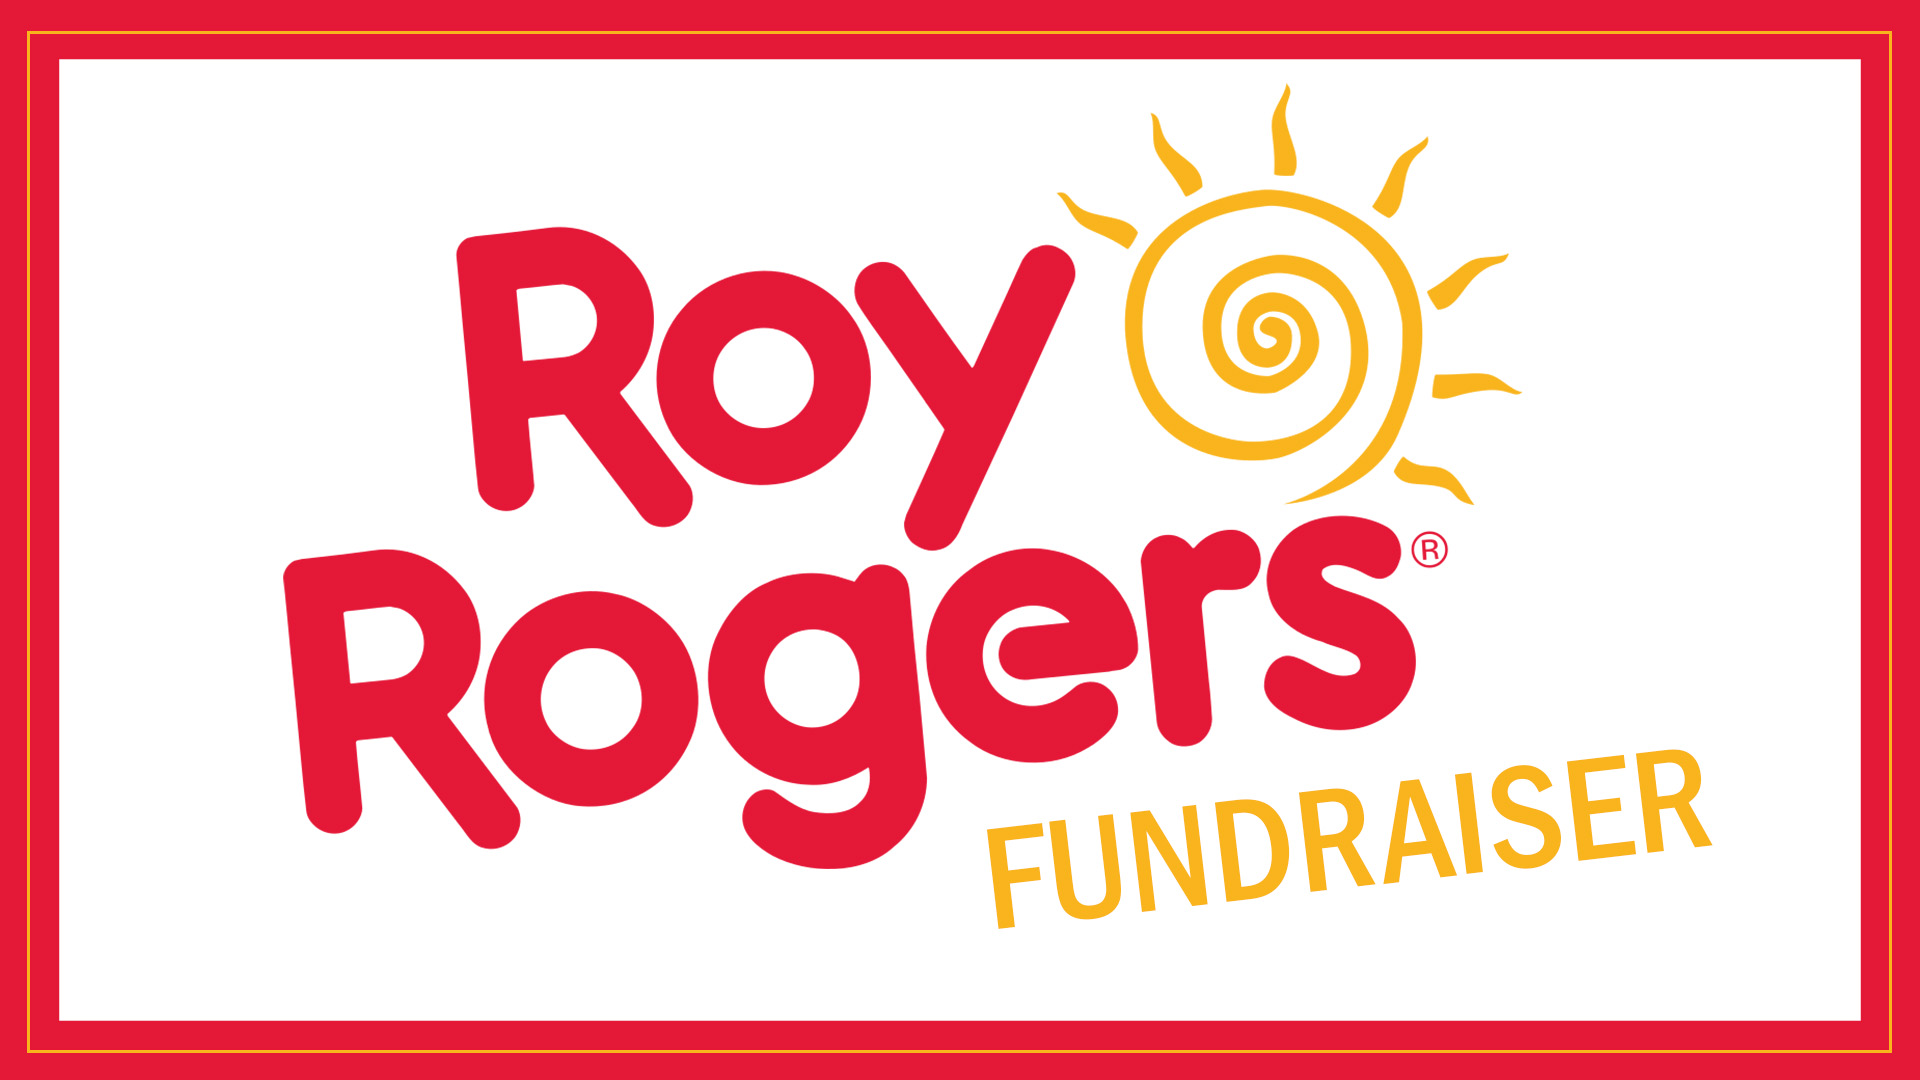 Roy Rogers Fundraiser